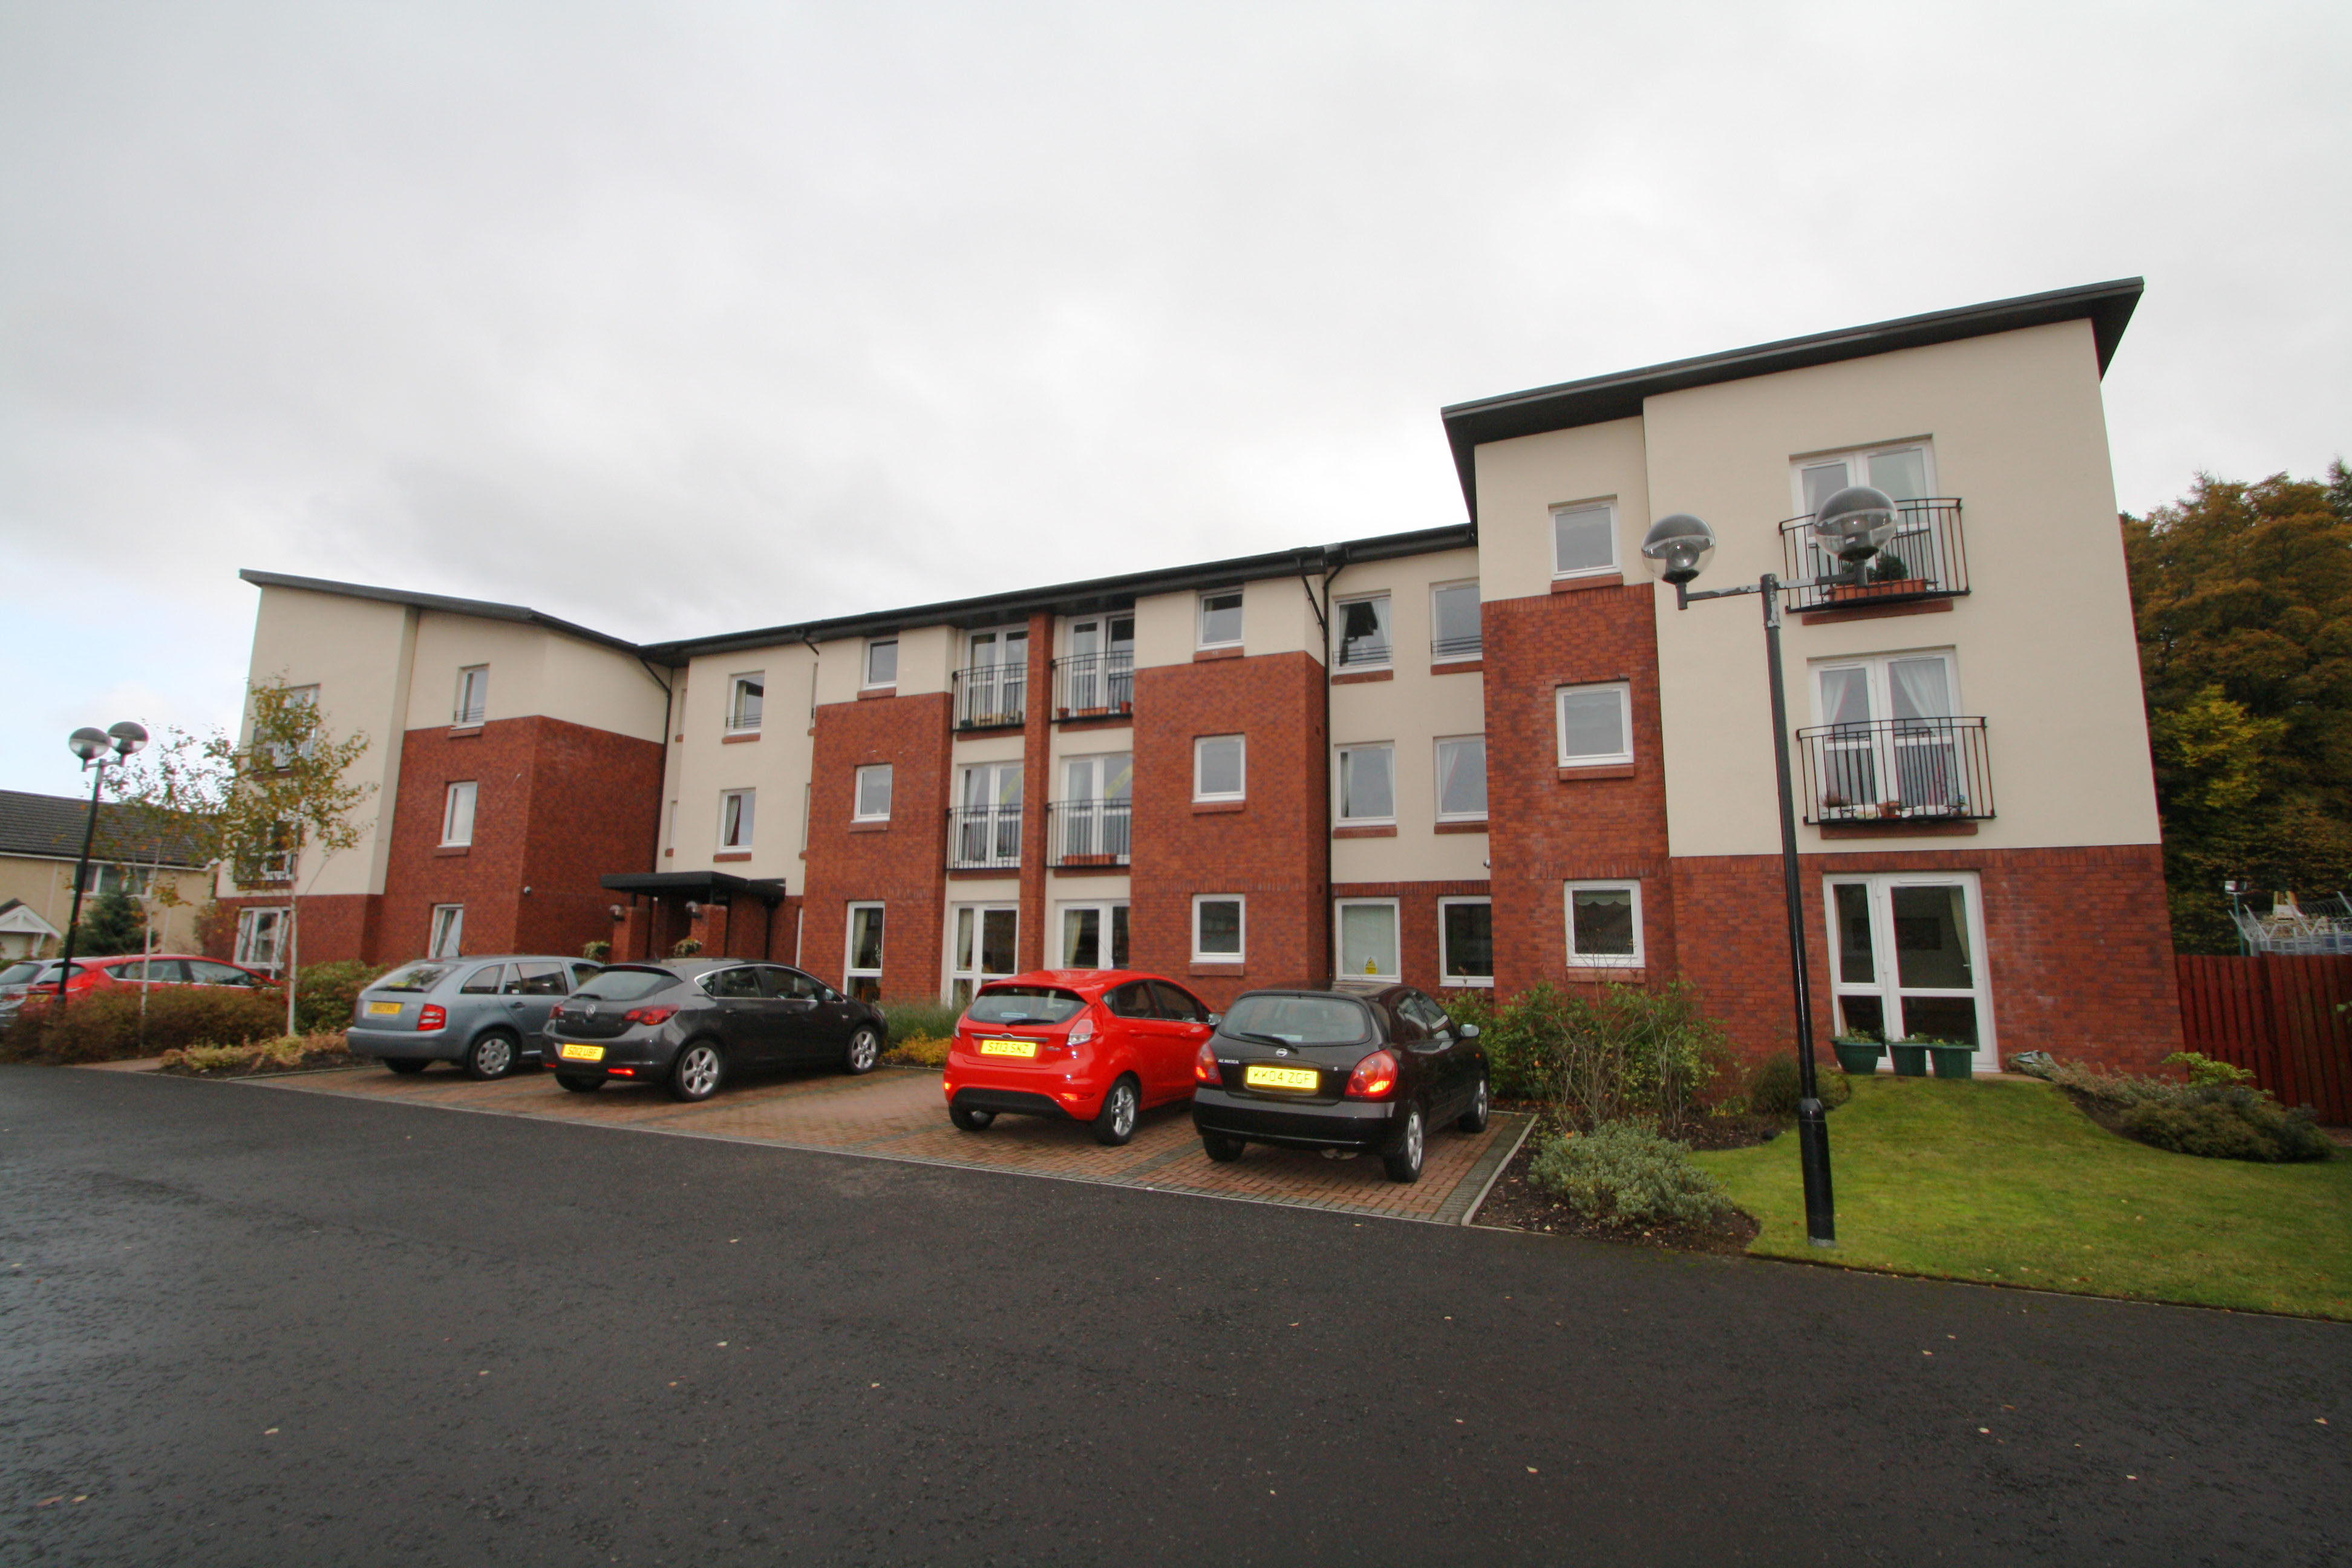 Flat 6 Strathmore Court,Kirkton Place, Forfar, Angus, DD8 2DX